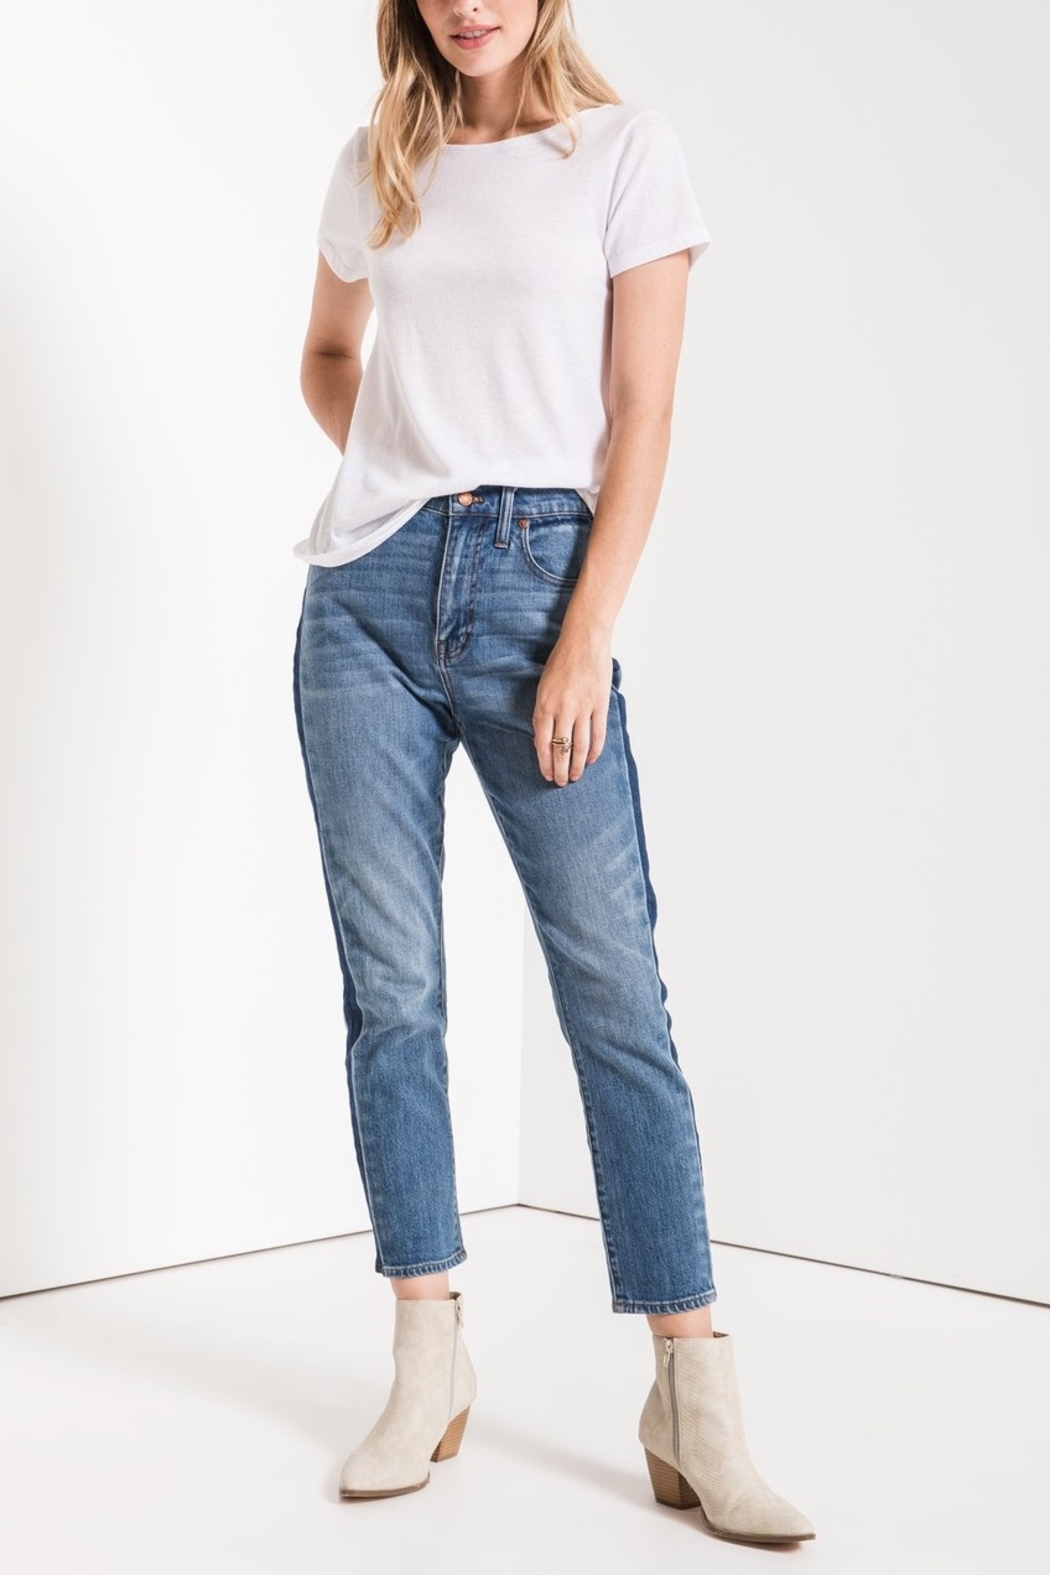 z supply Twist Back Tee - Front Cropped Image